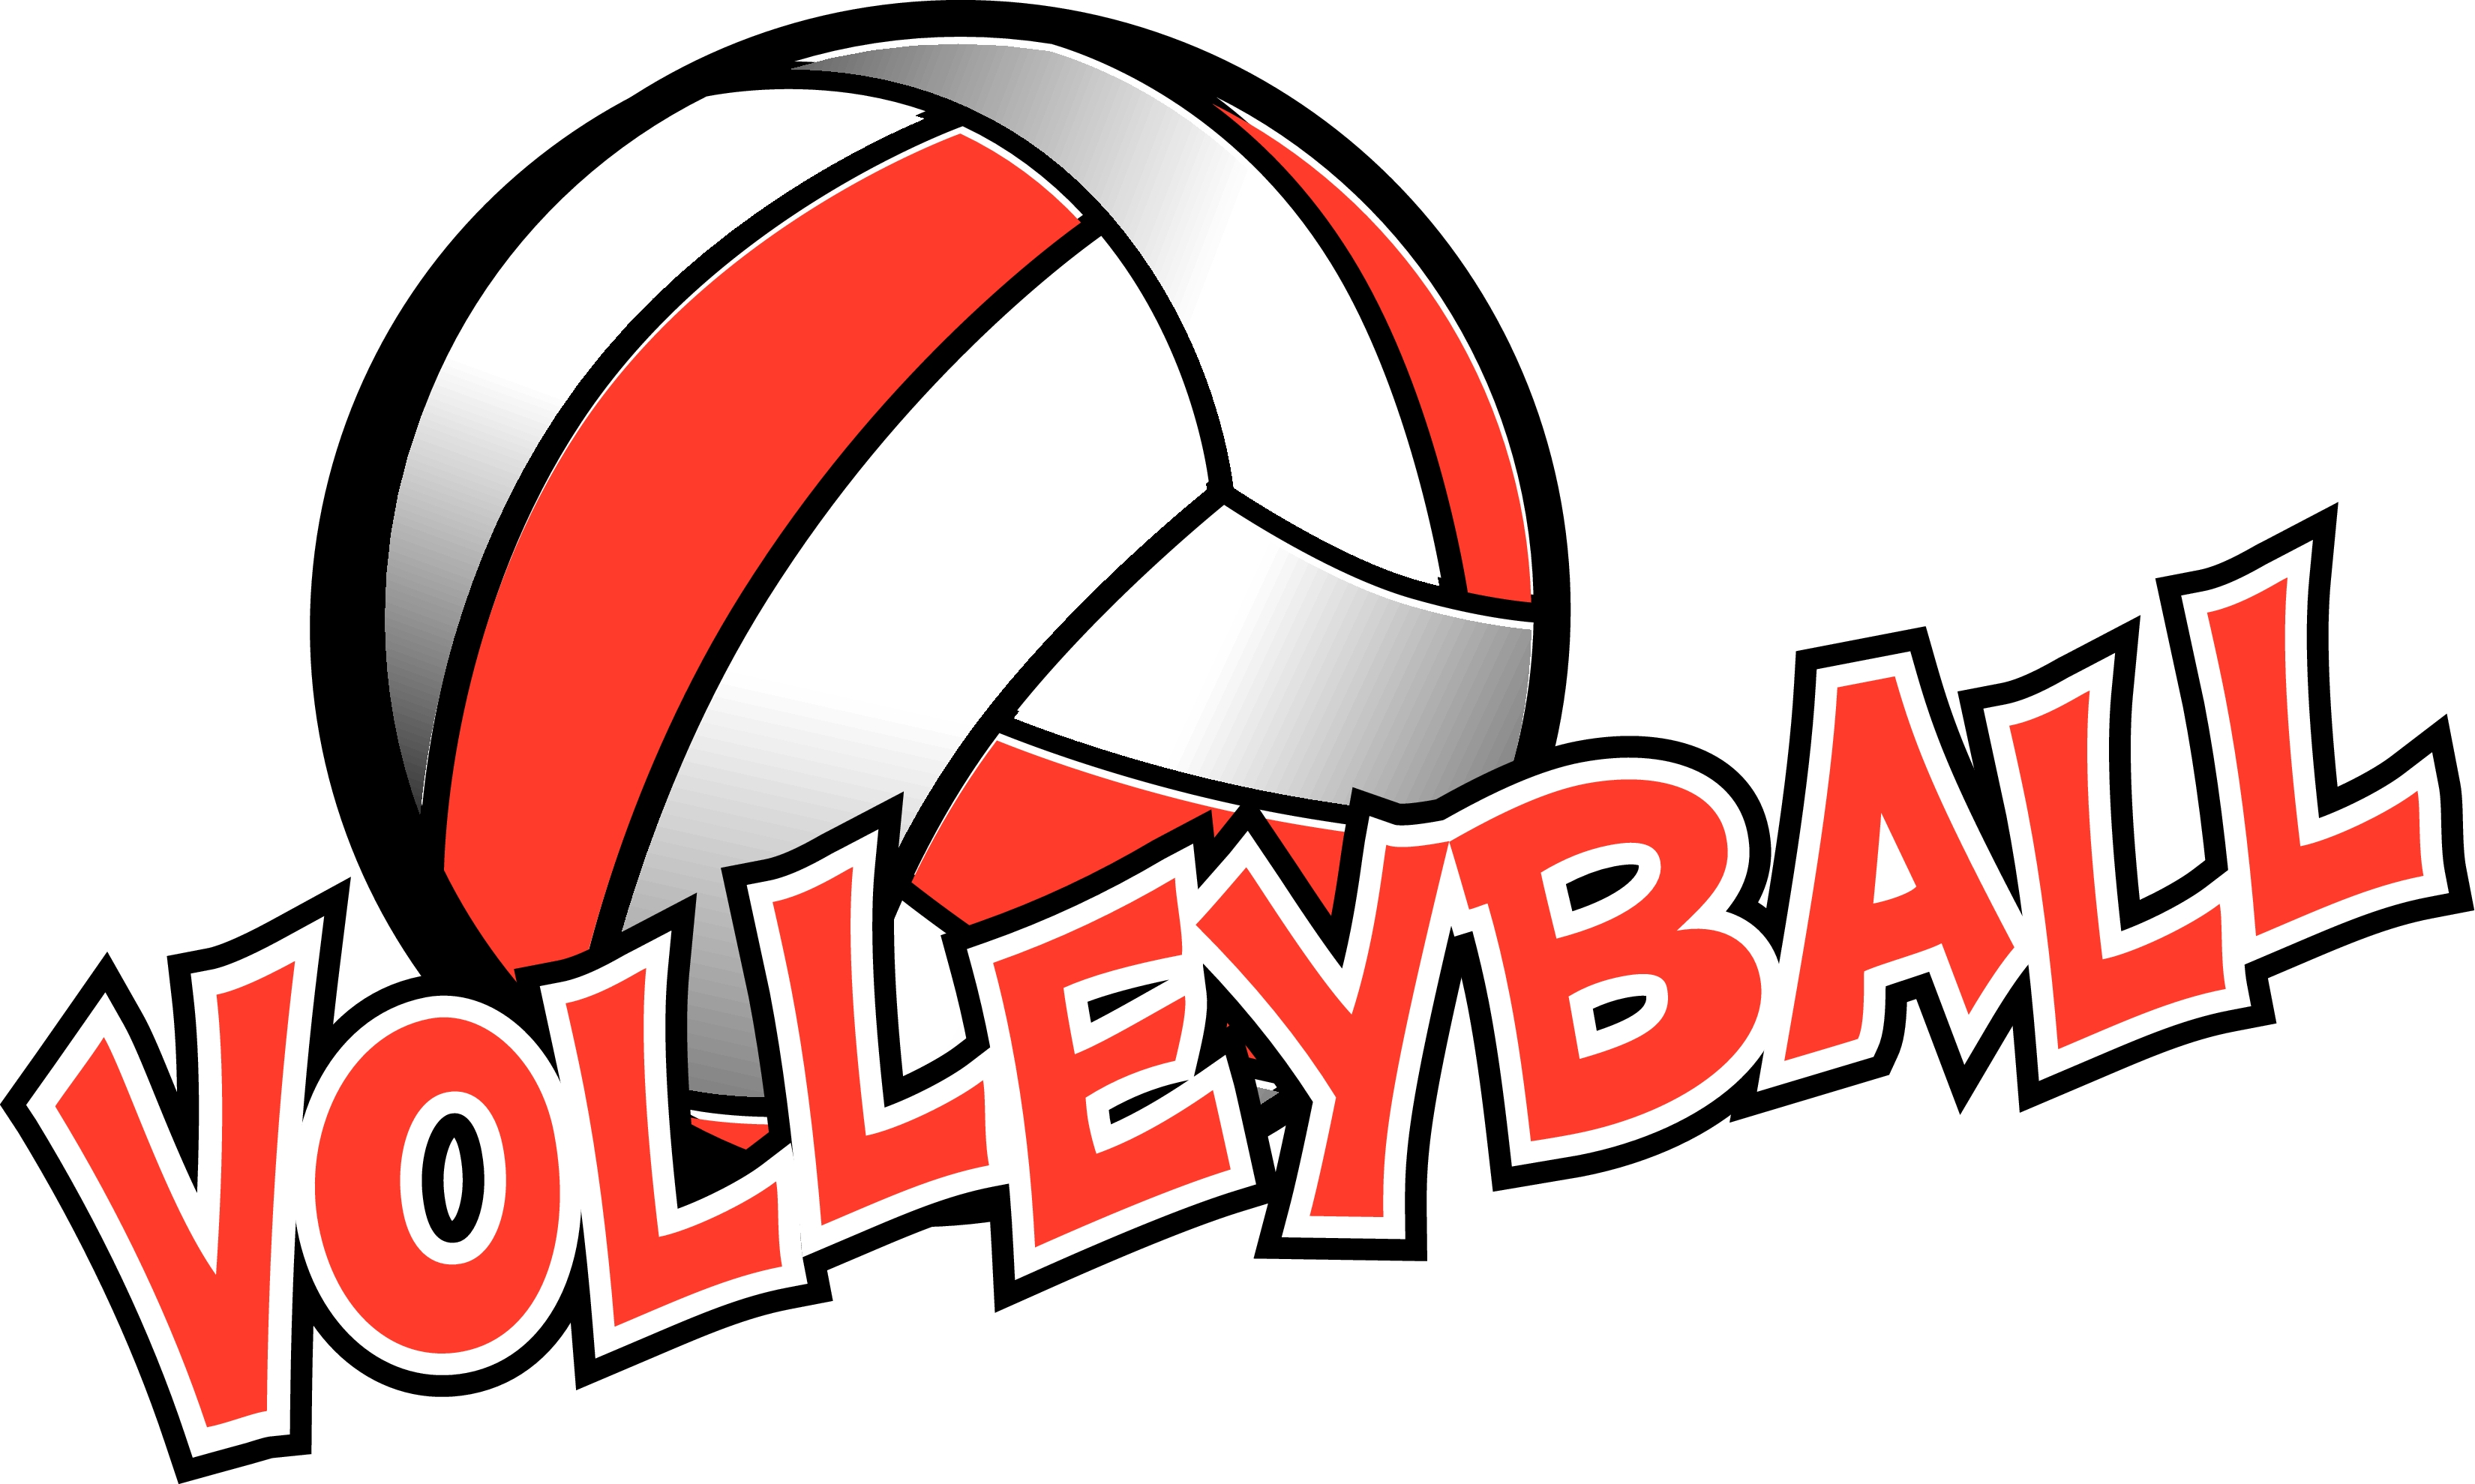 Free volleyball logos clipart clip black and white Flaming Volleyball Clipart | Free download best Flaming Volleyball ... clip black and white